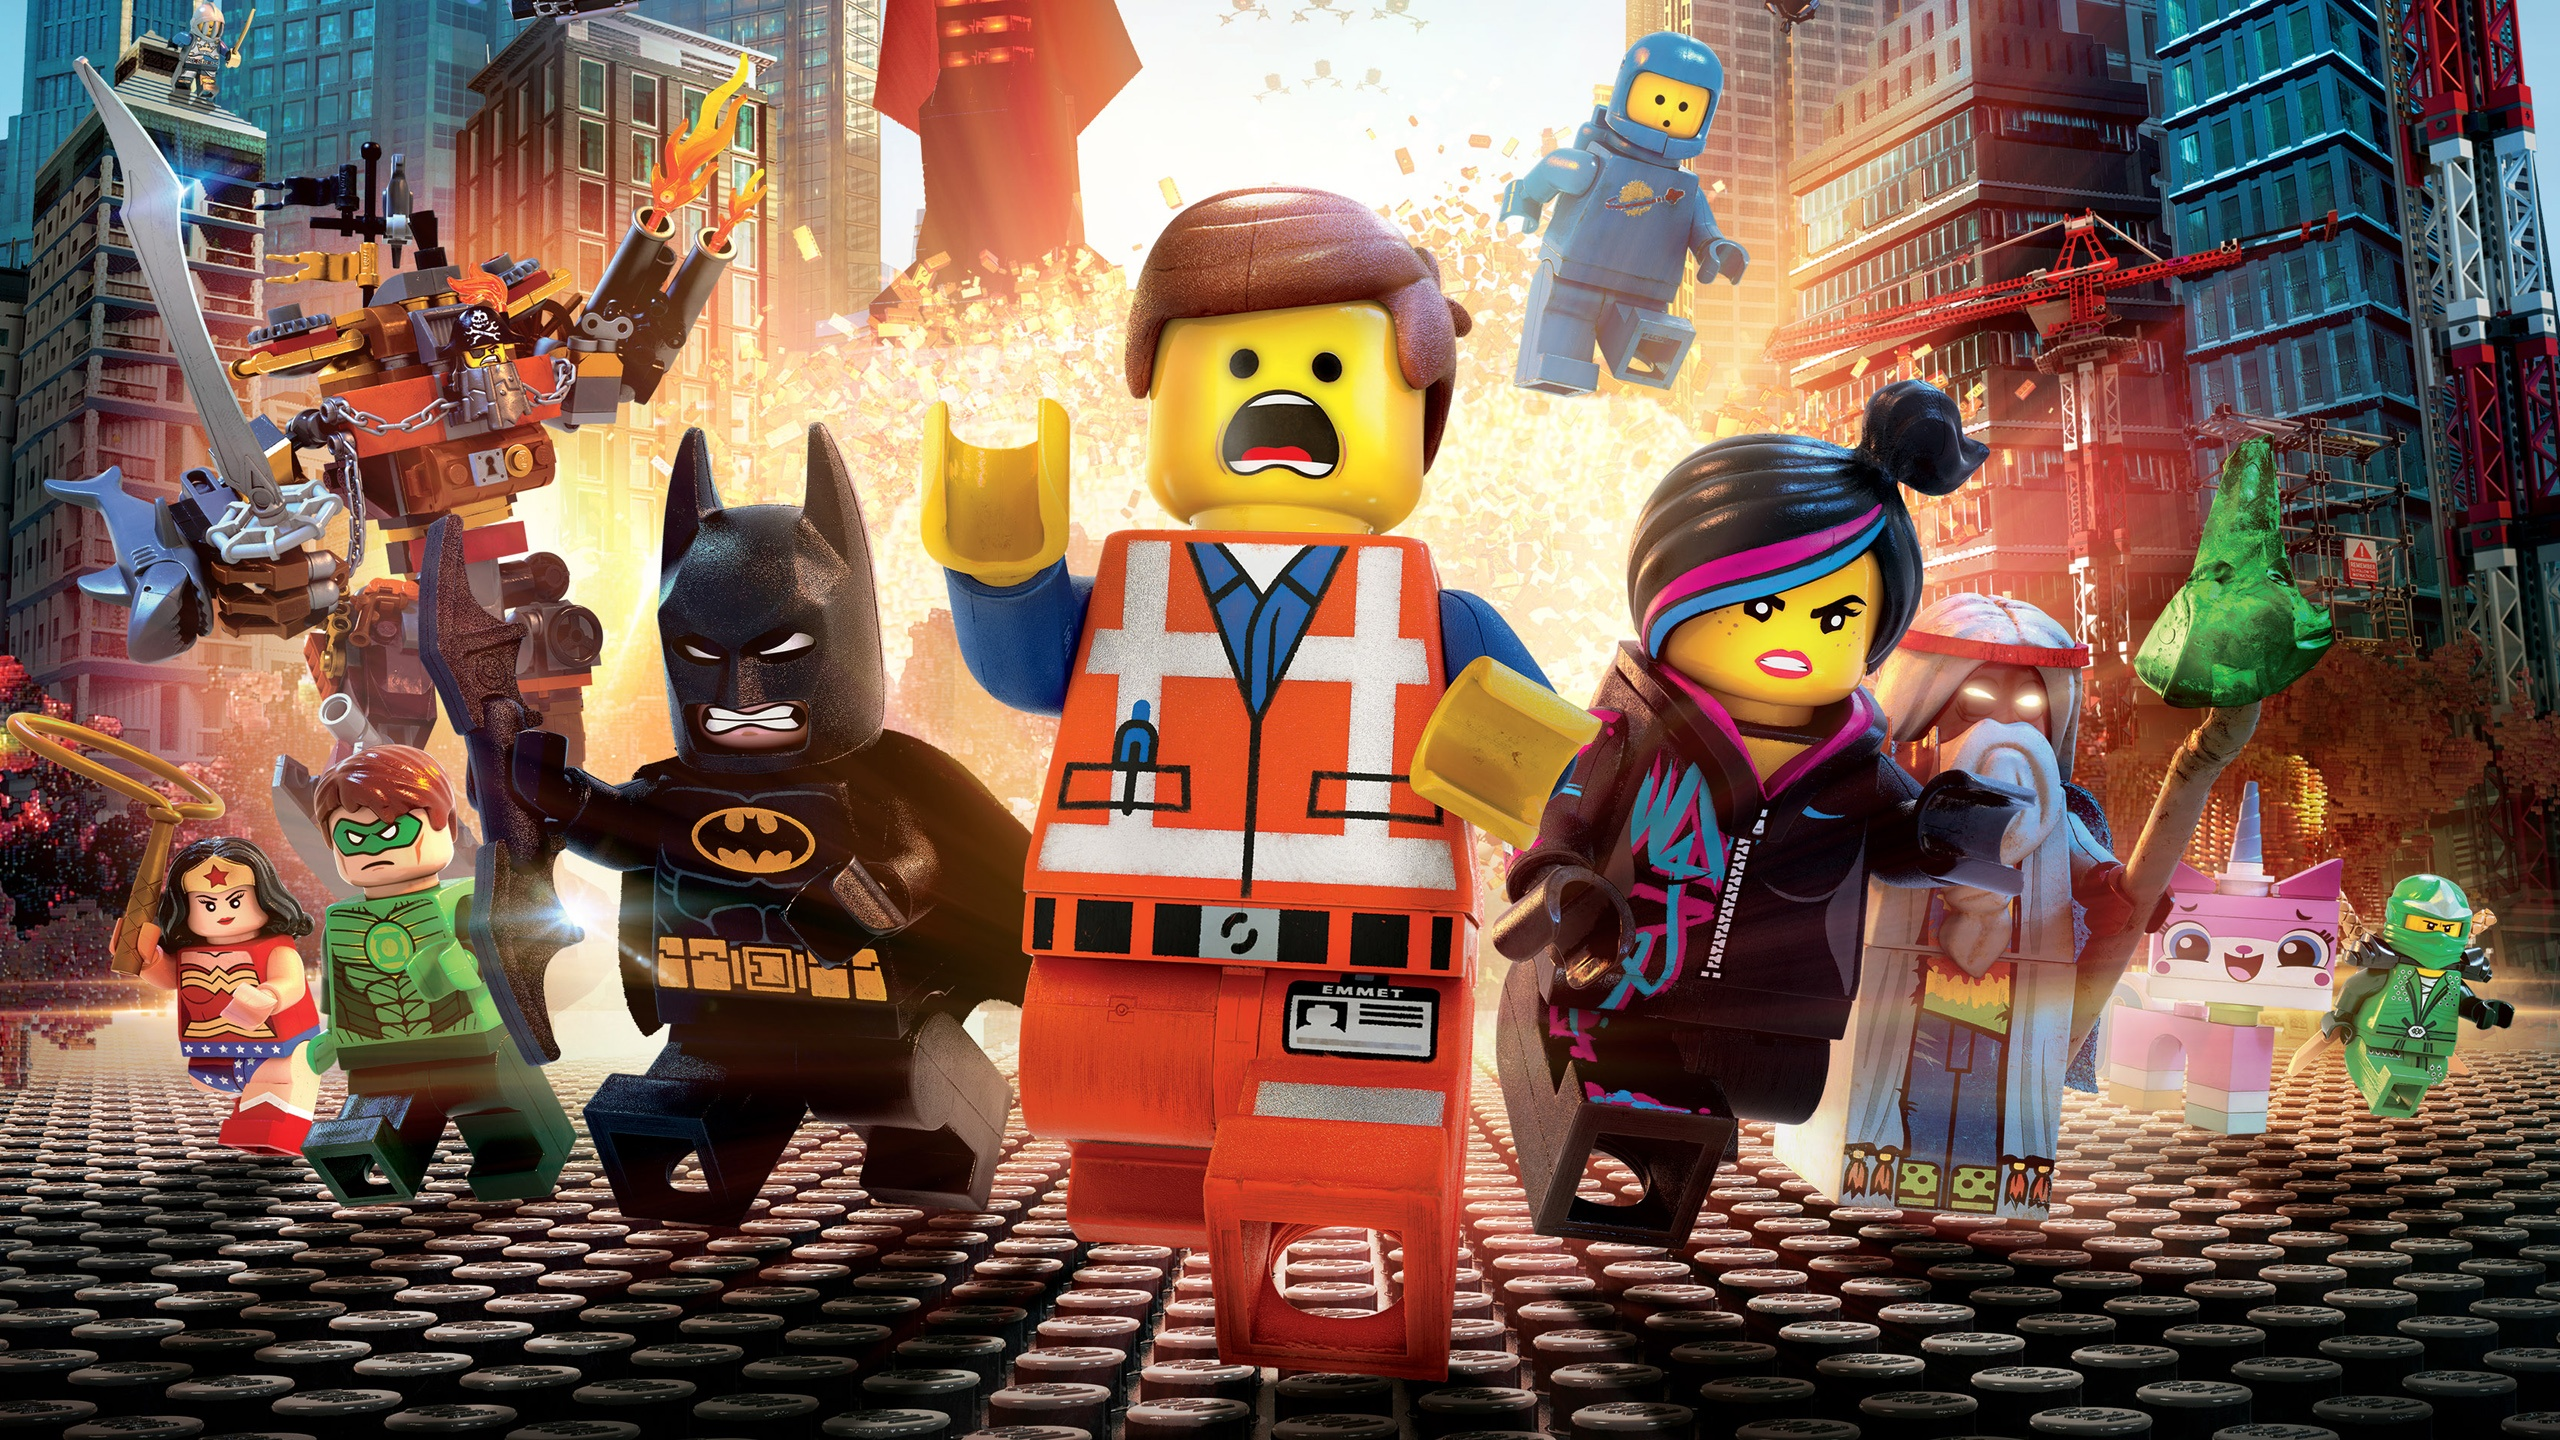 Lego Movie HD